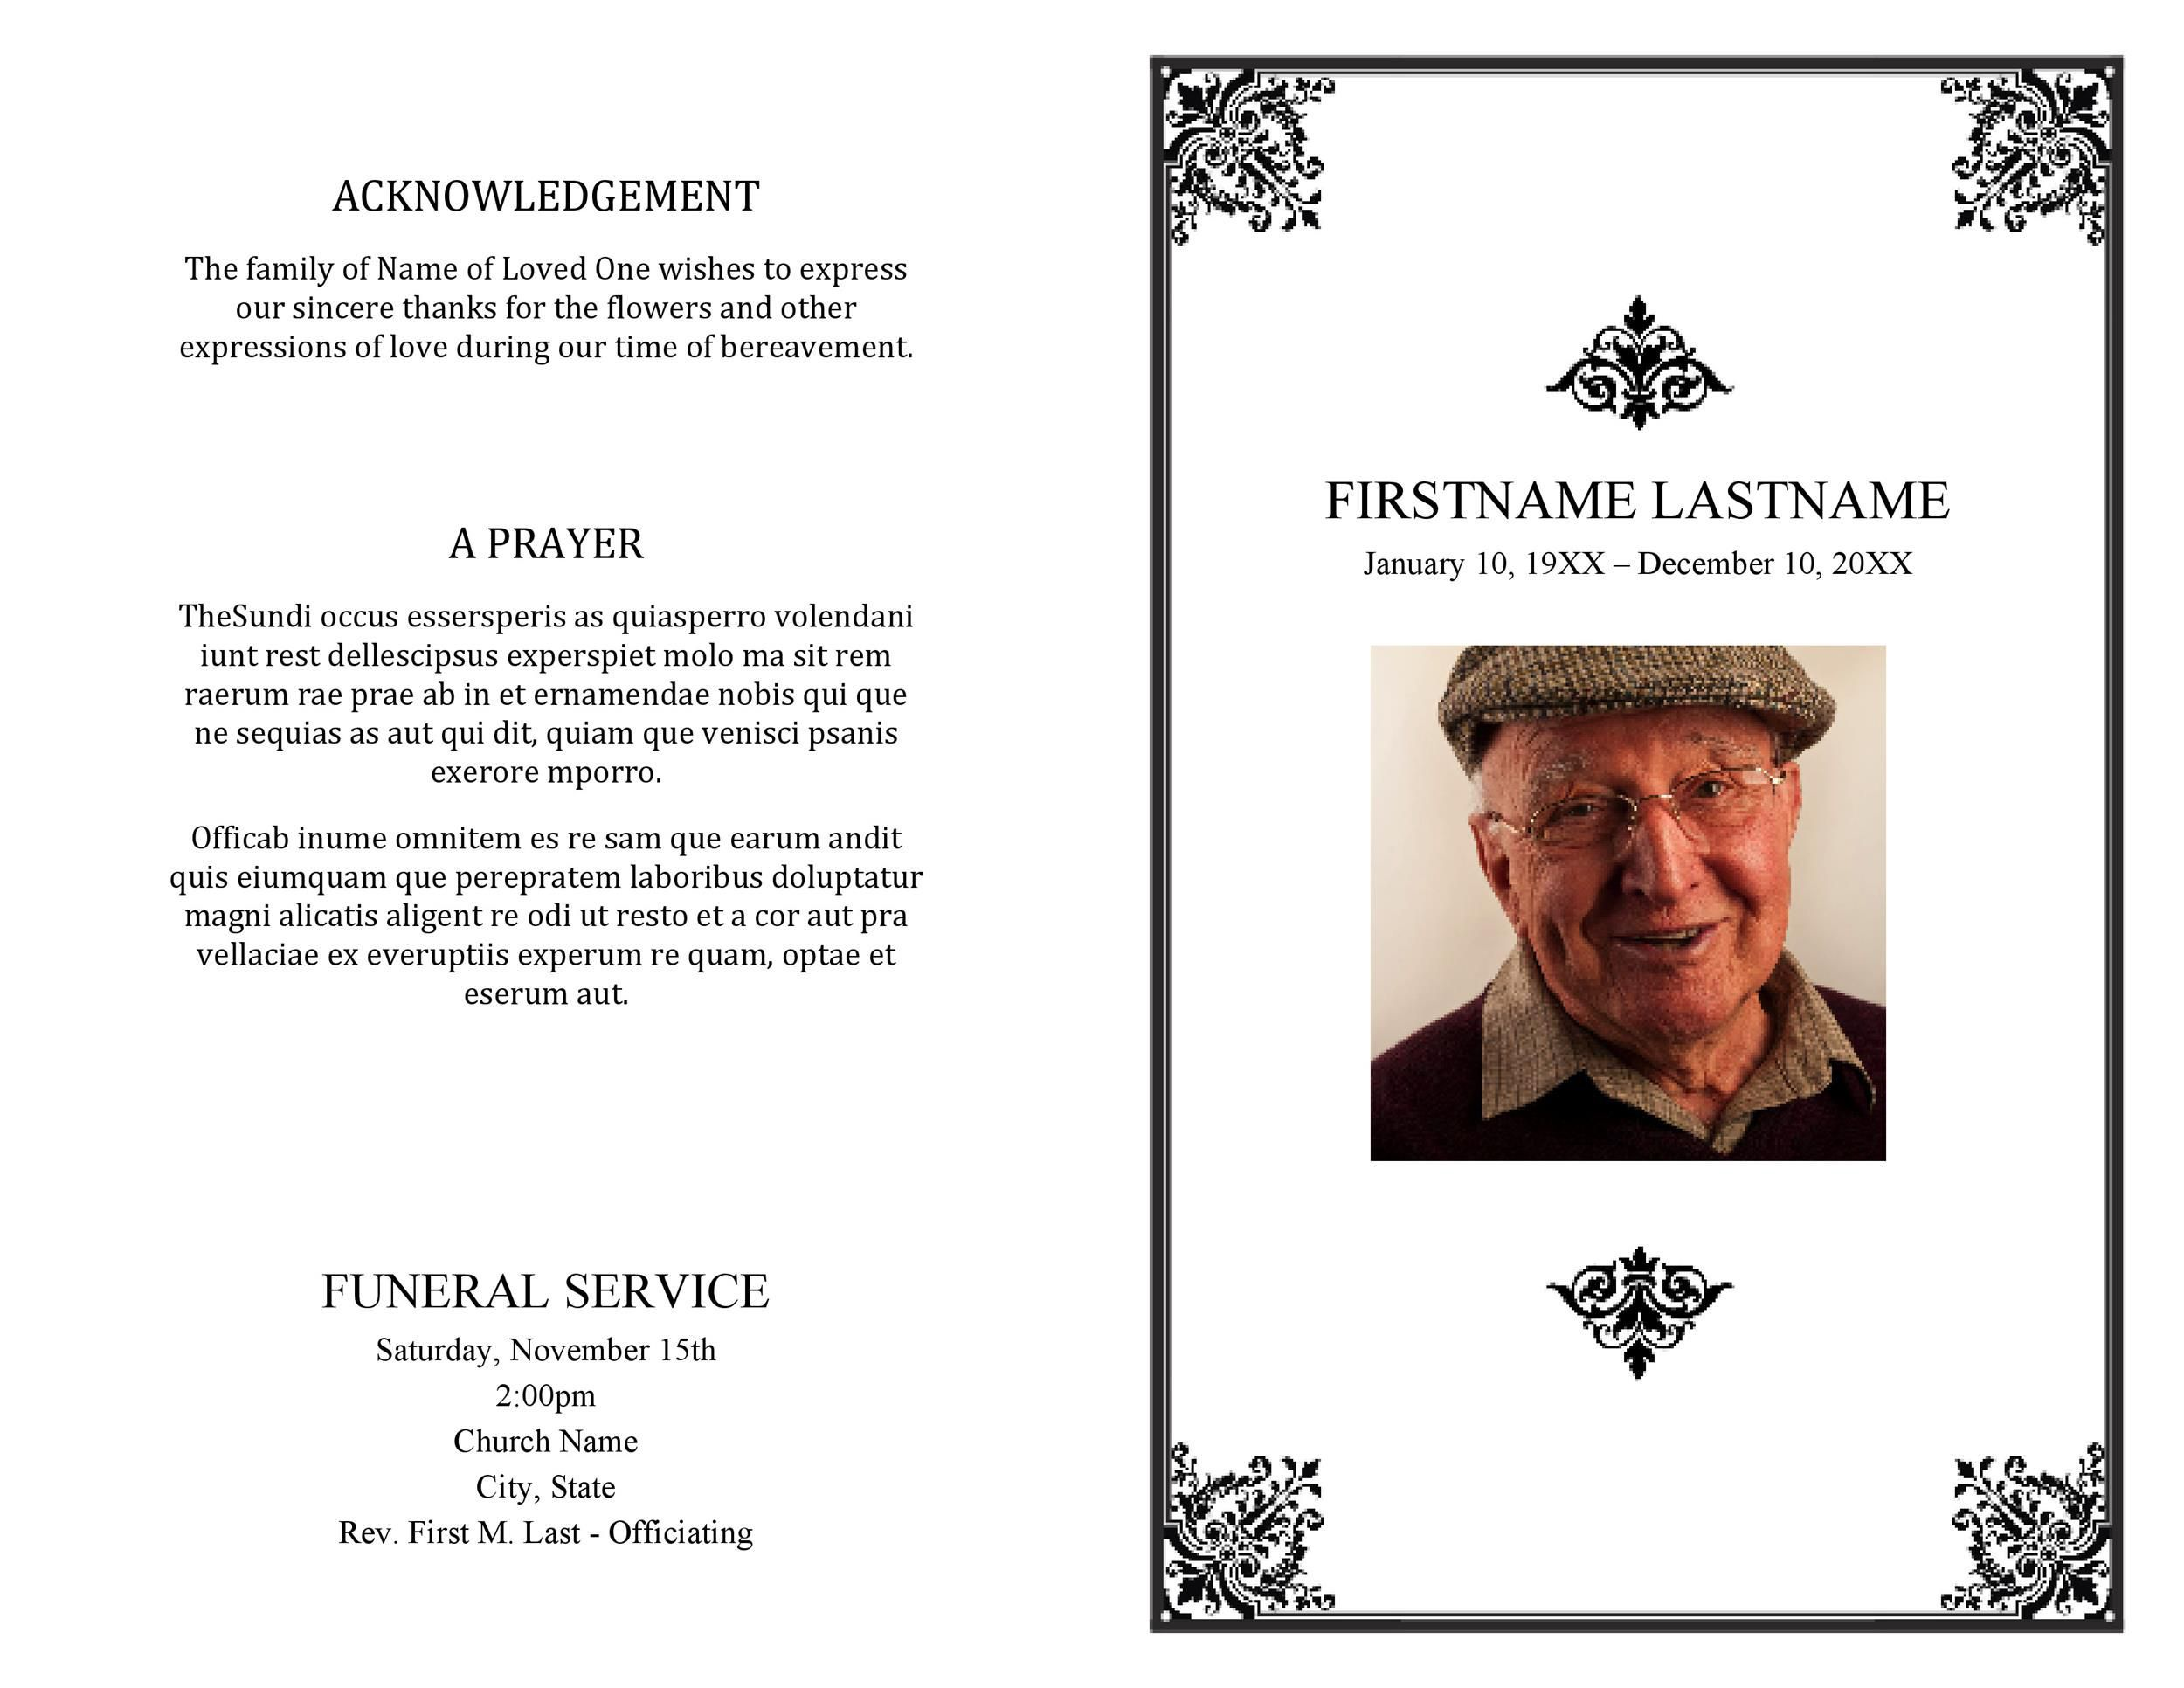 005 Stupendou Example Funeral Programme Sample  Format Of Program Template Free To DownloadFull